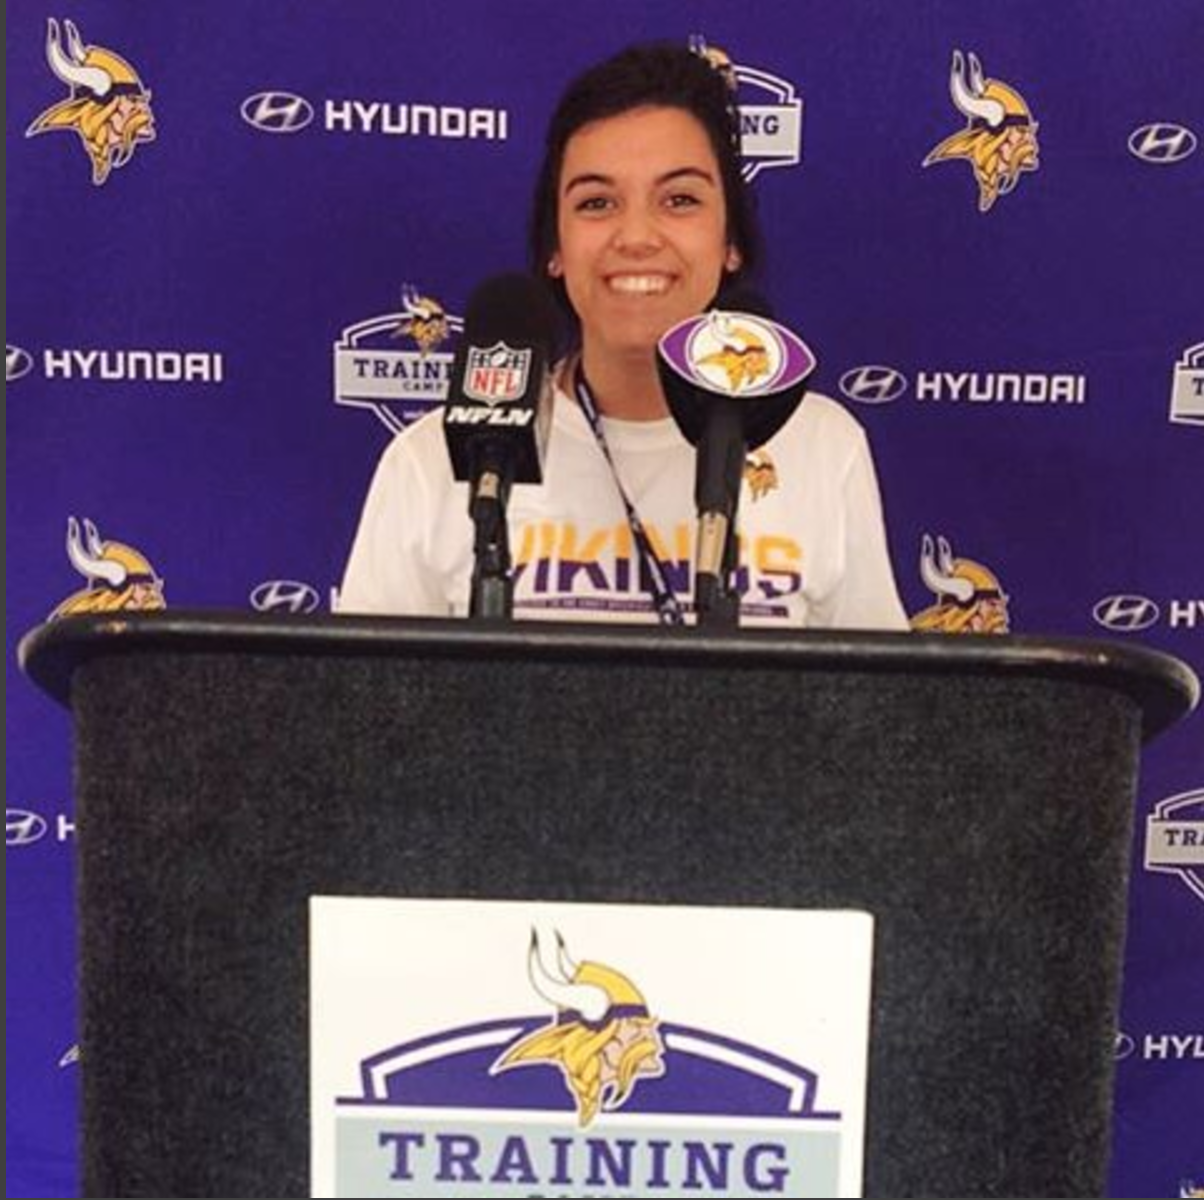 Emily poses at the Minnesota Vikings press podium during her internship.